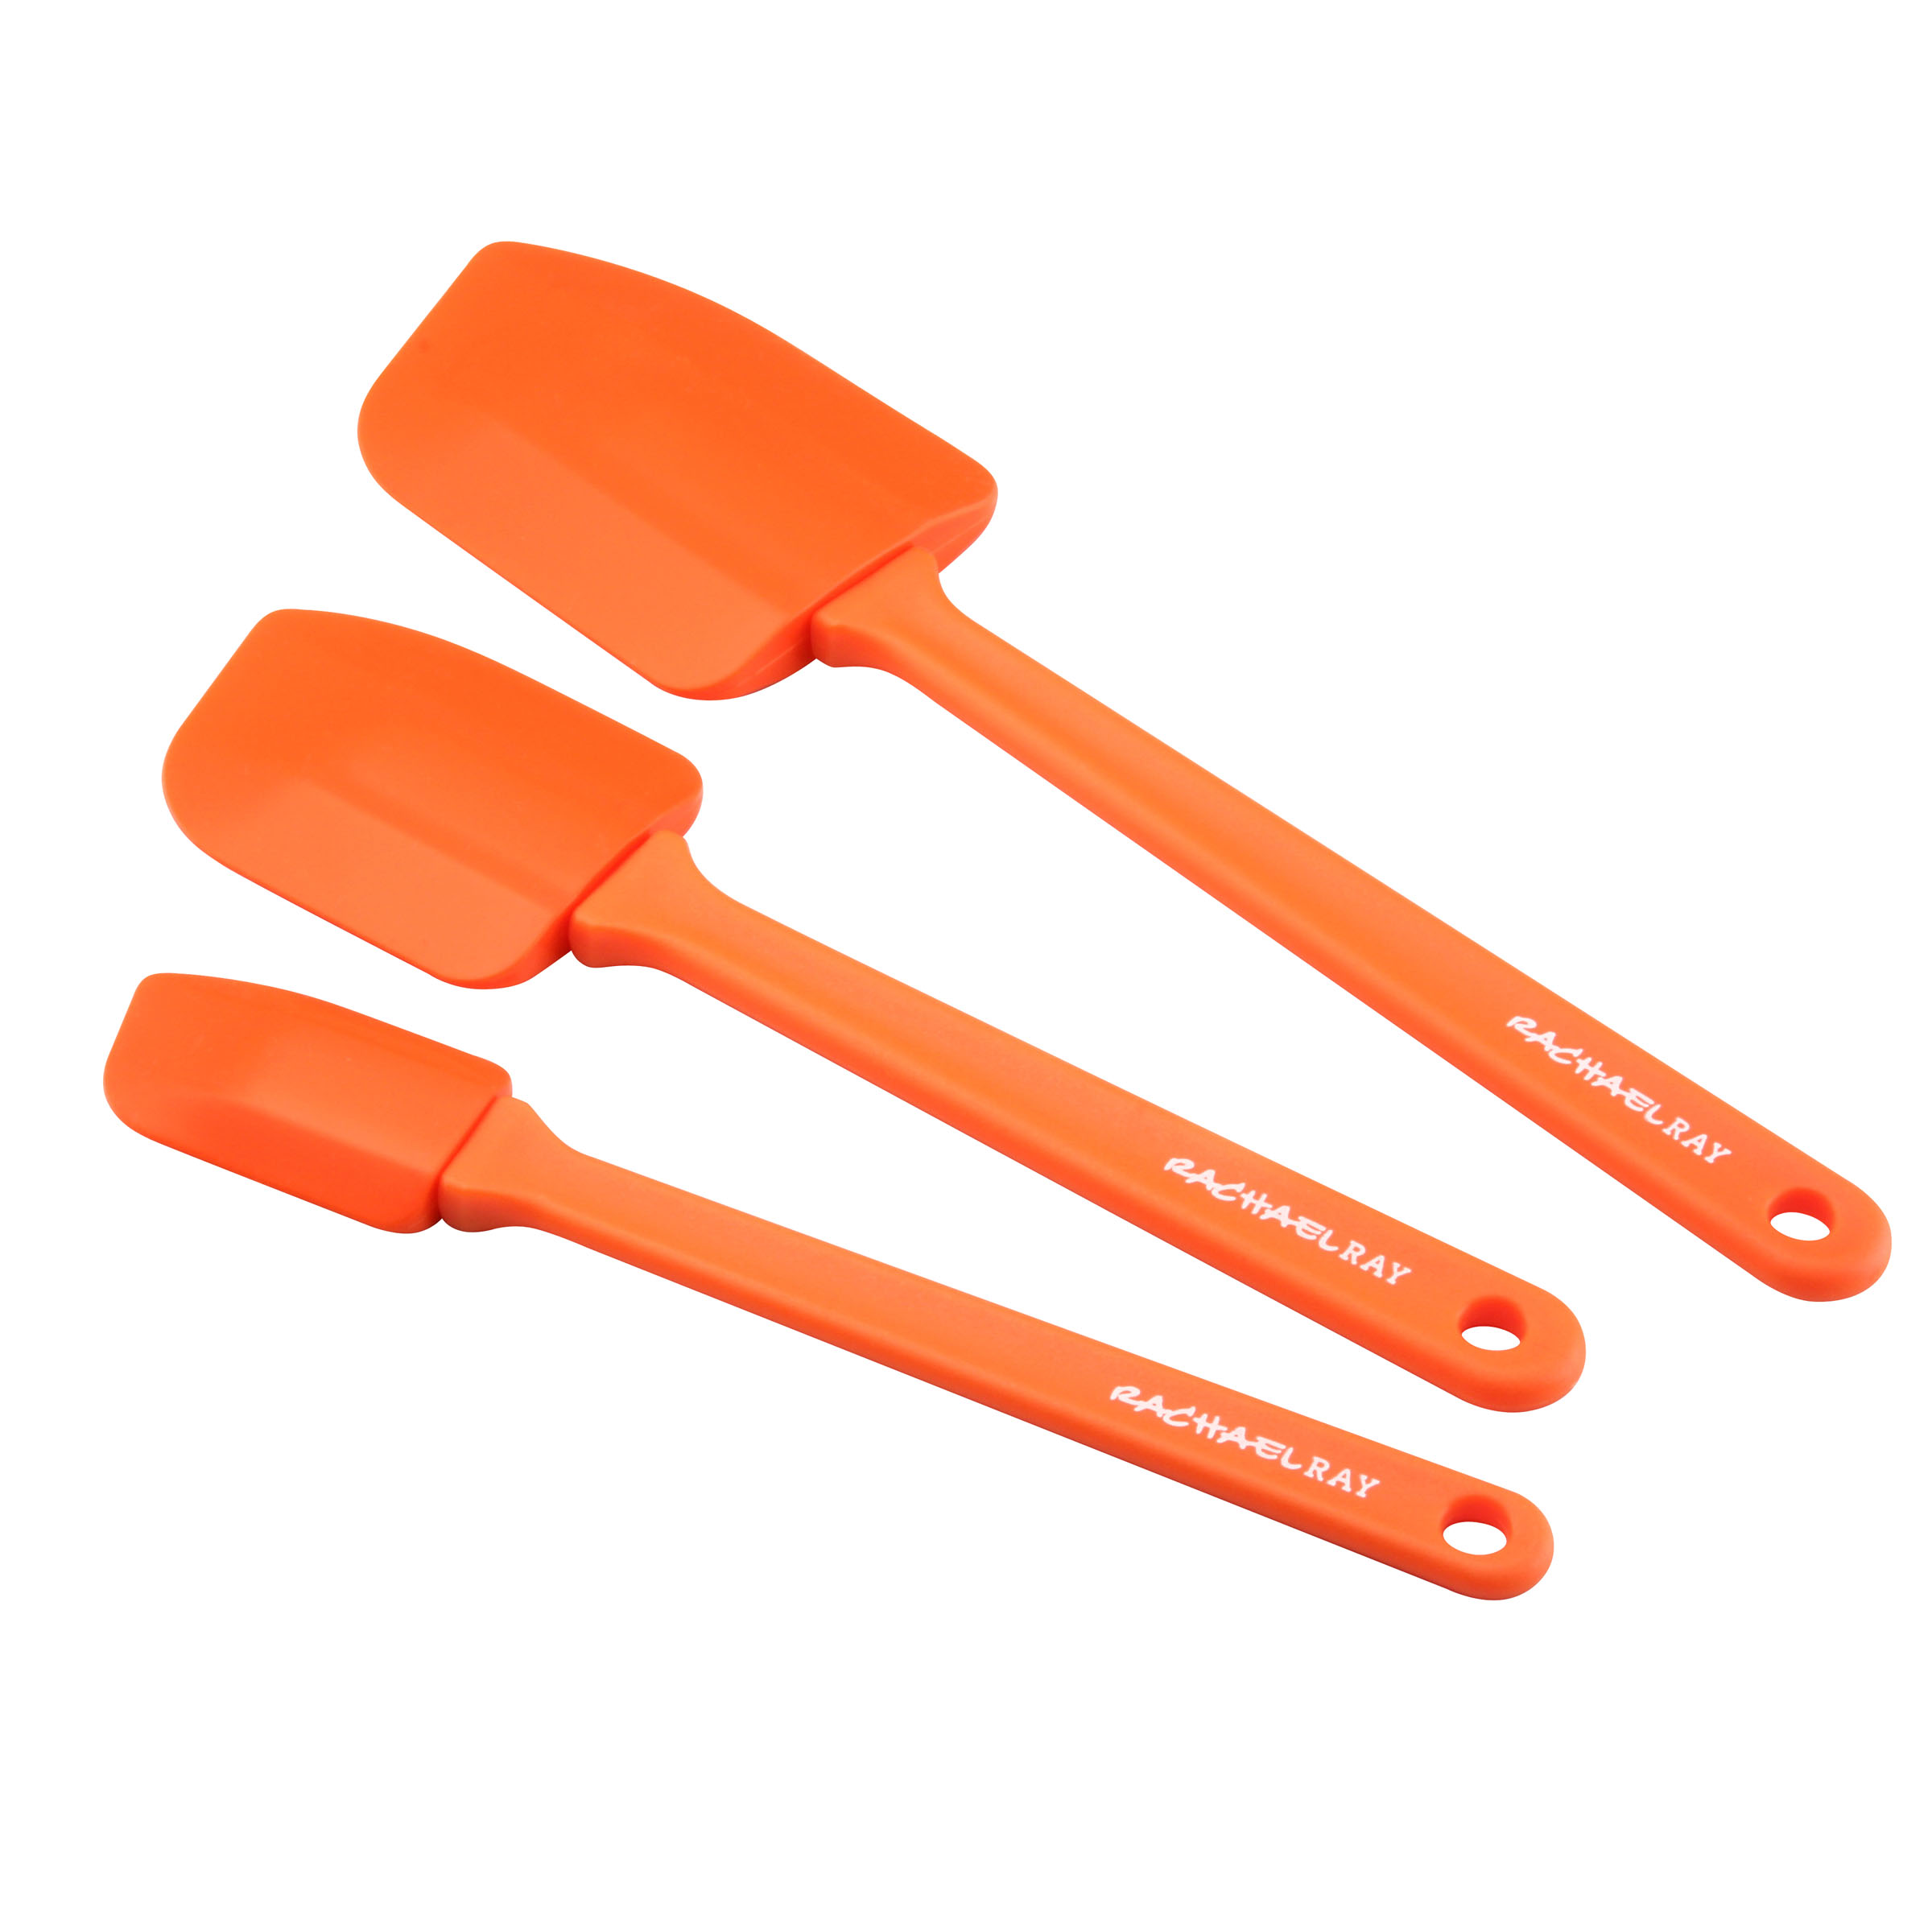 Rachael Ray Orange Silicone 3 Piece Spatula Set